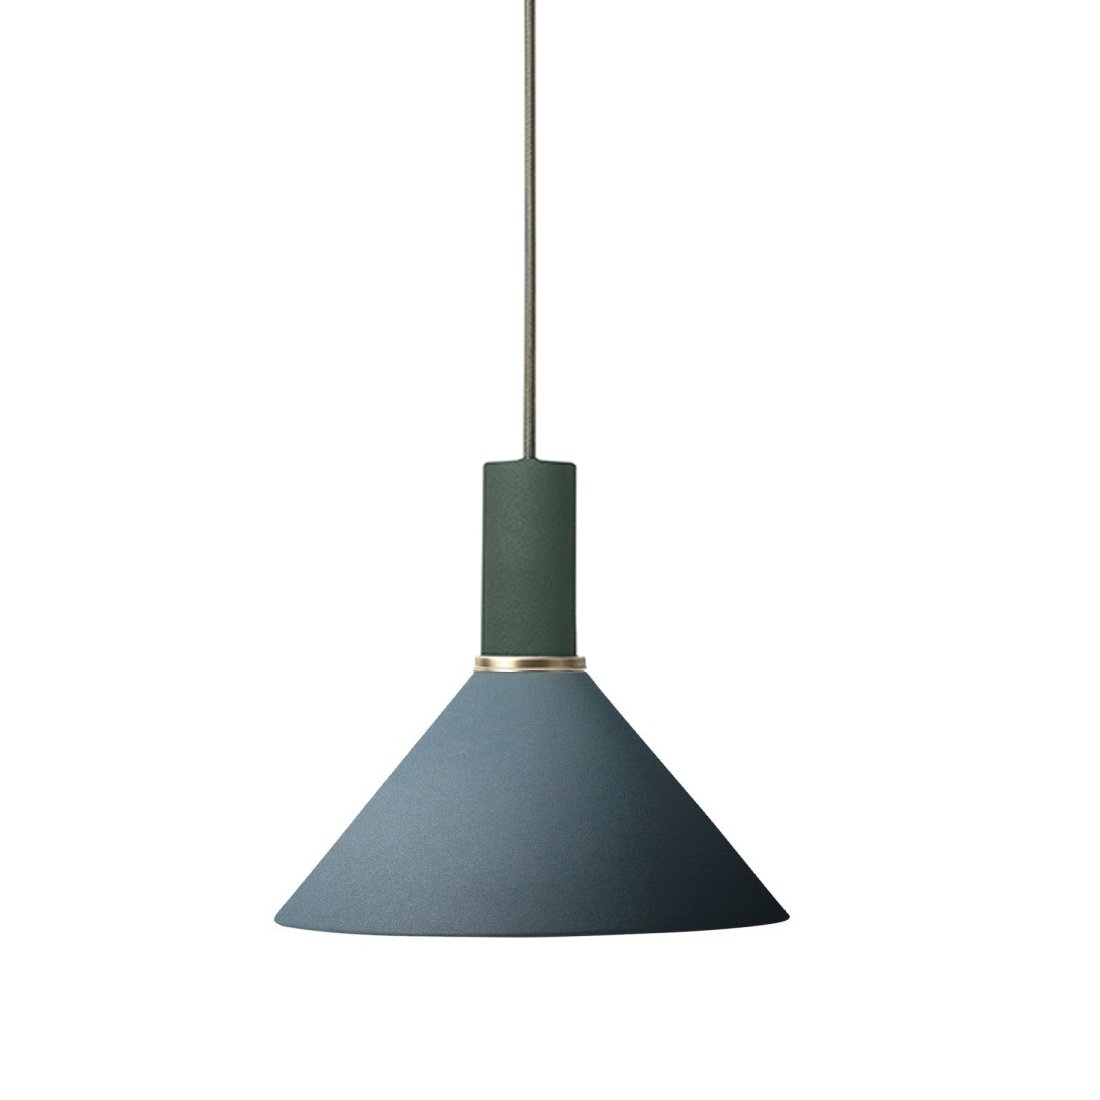 Ferm Living Collect Cone Low Hanglamp Donkergroen Donkerblauw